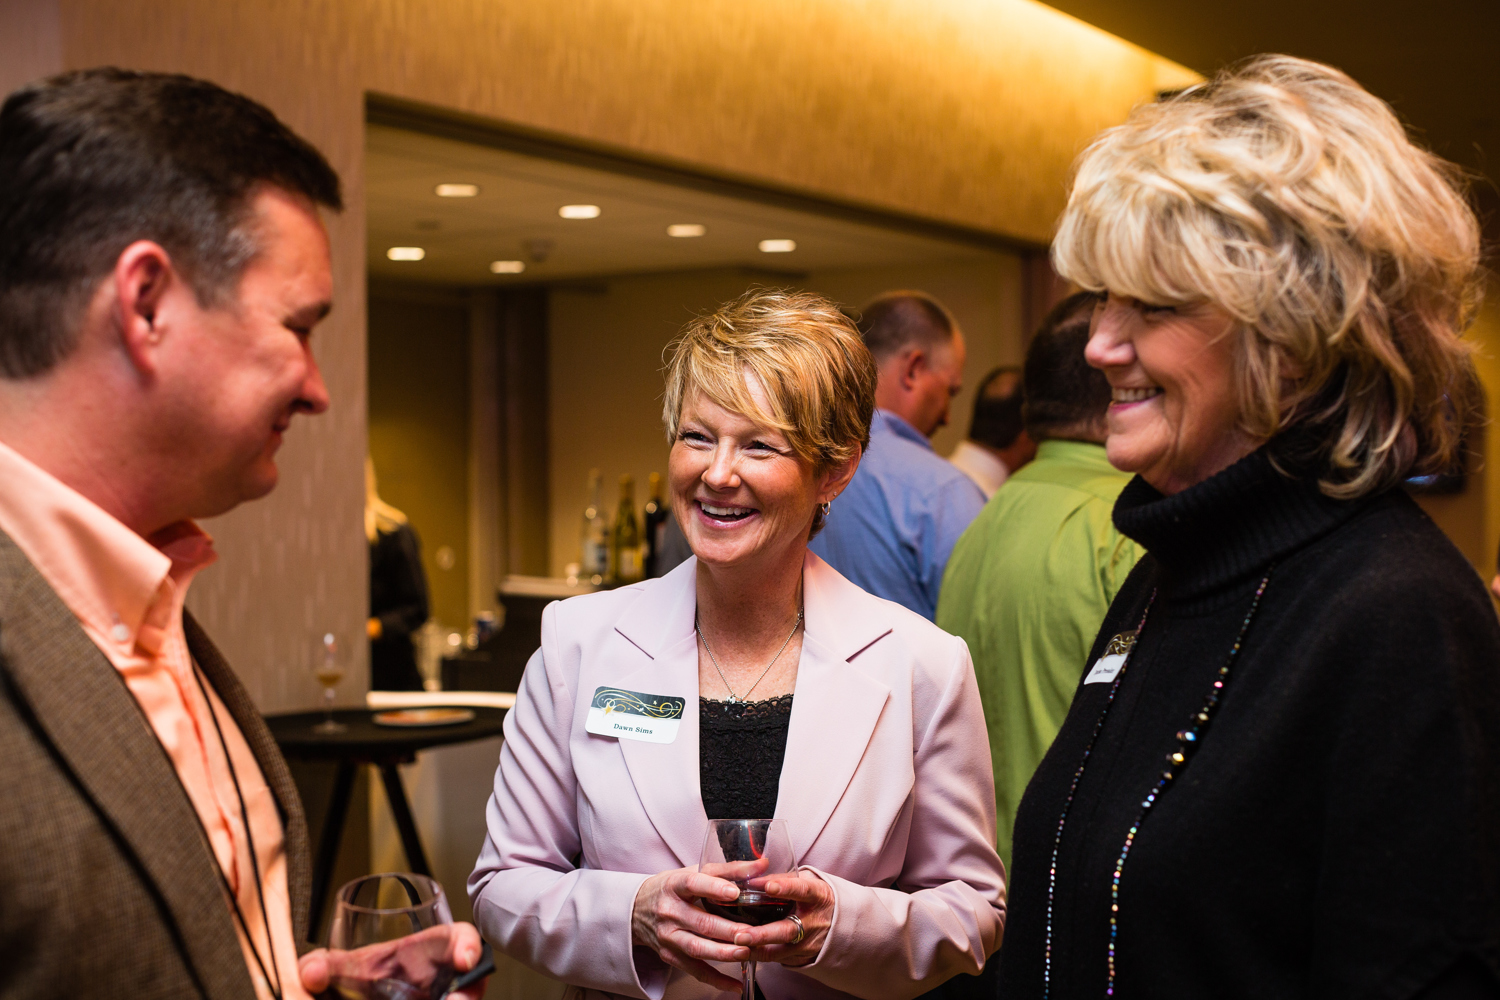 business networking event candid